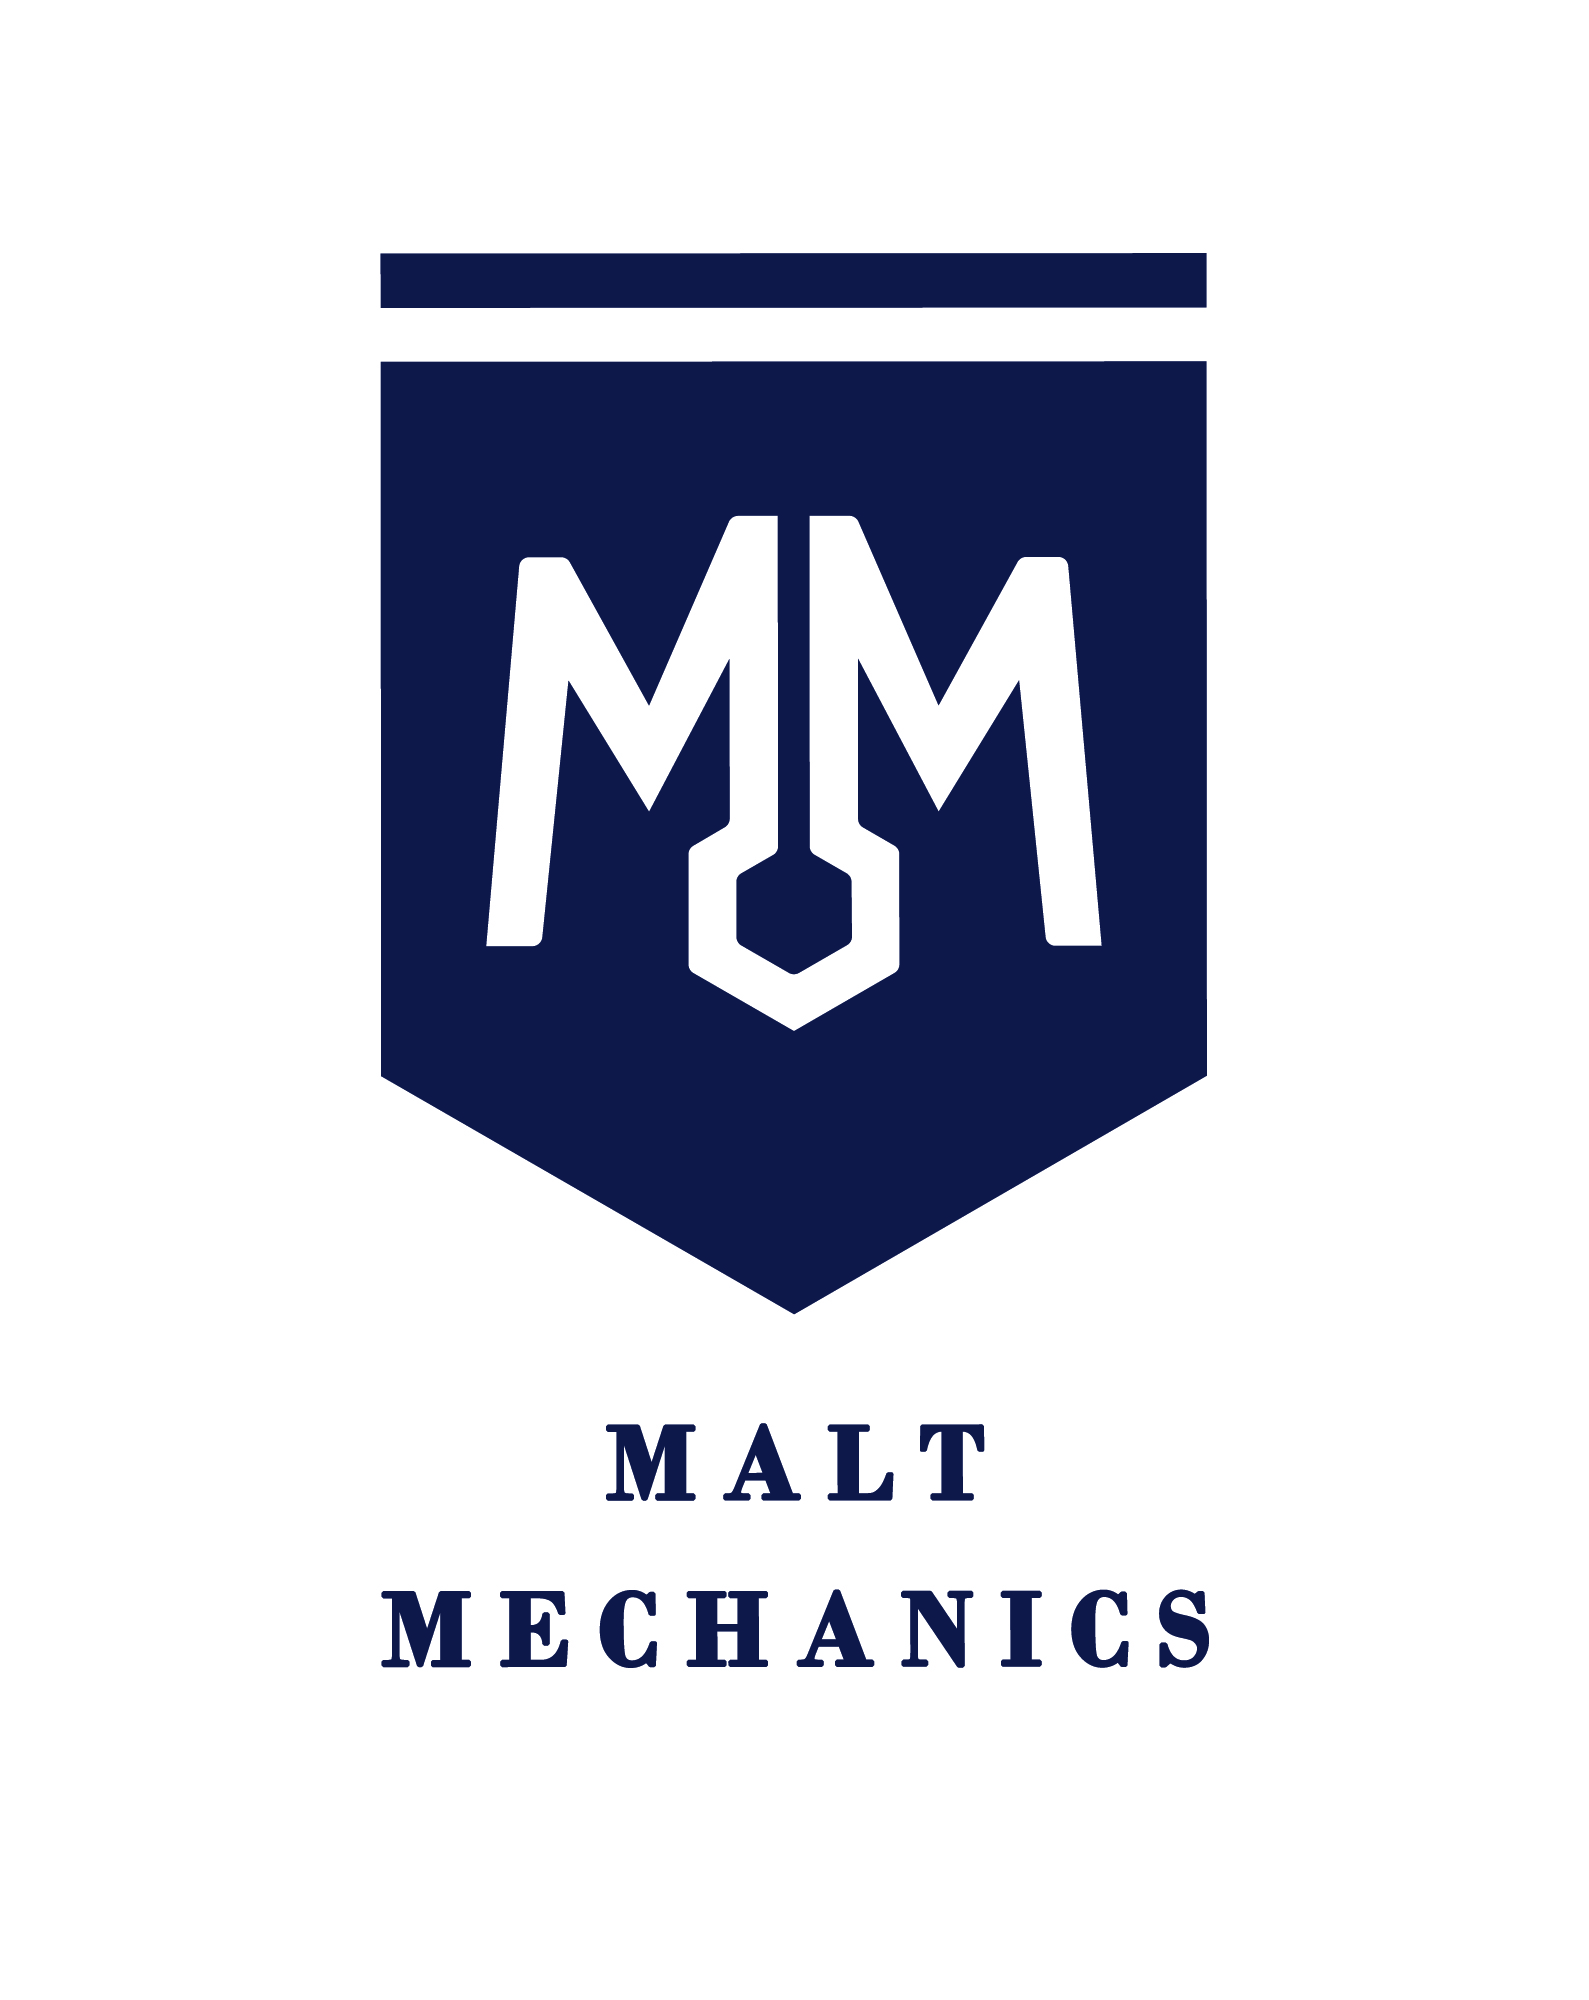 MM Full Logo-01.jpg